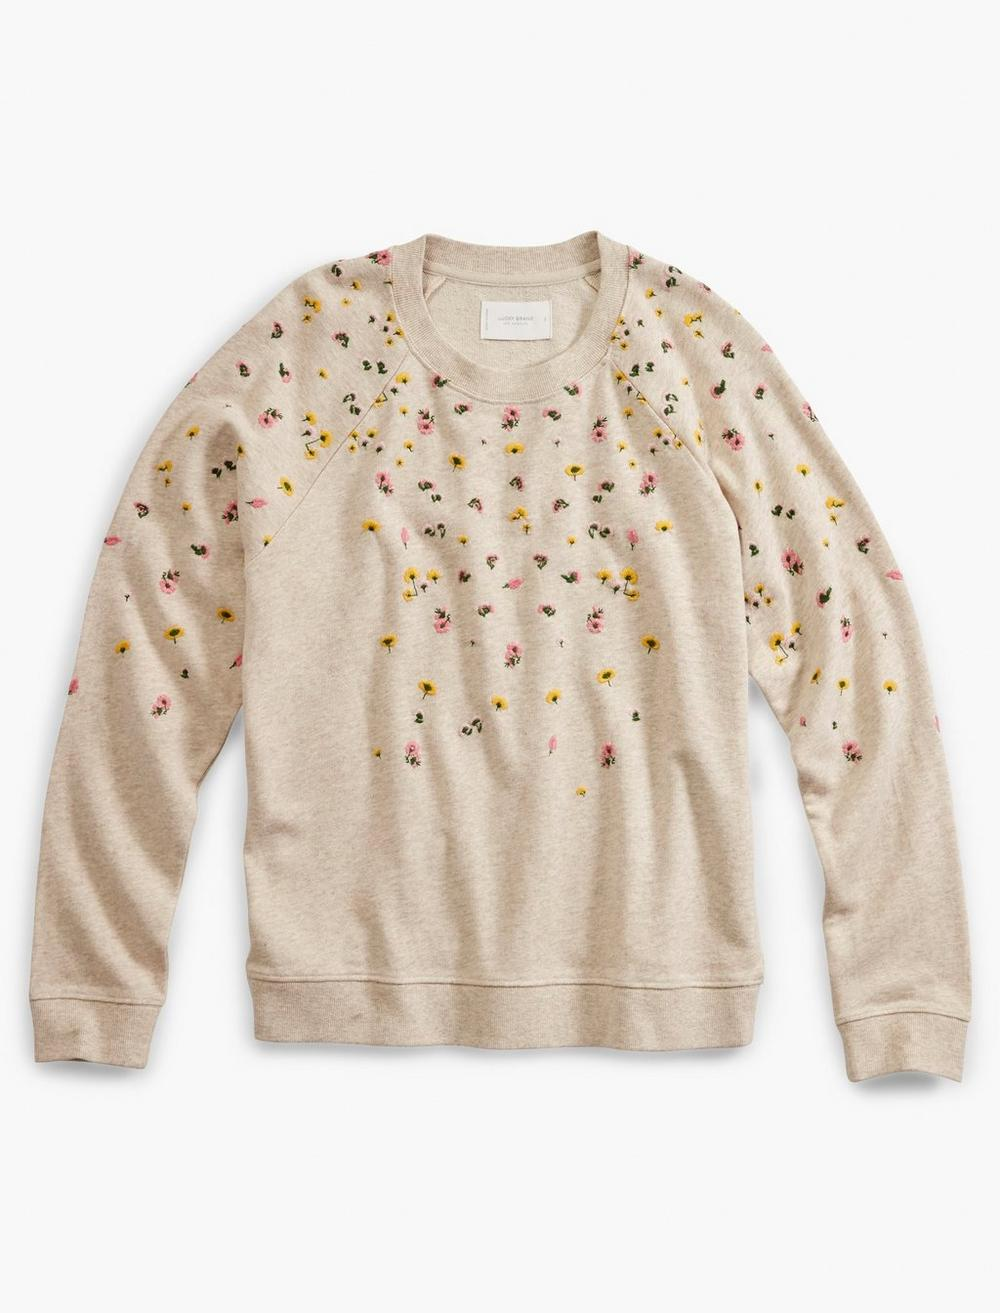 TOSSED FLORAL EMBROIDERY PULLOVER, image 1